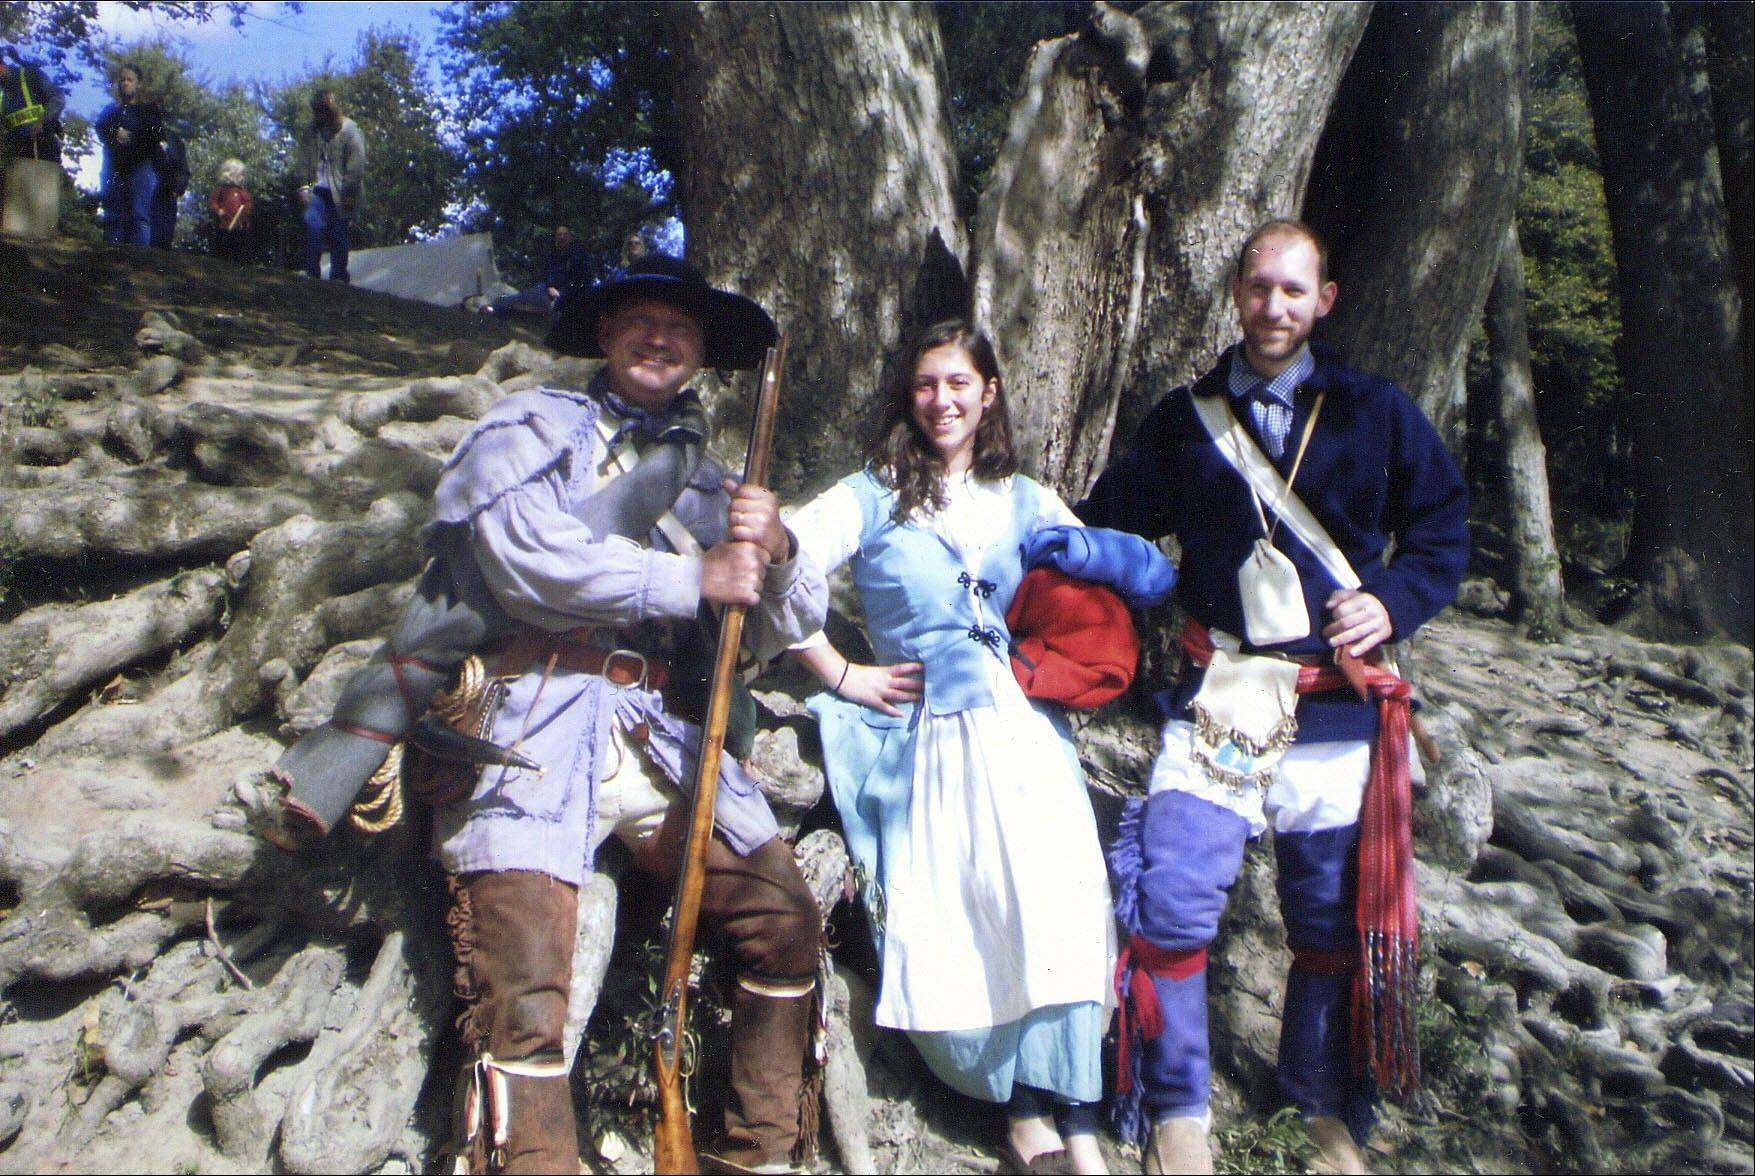 David Nordin, his son's girlfriend Emily and his son, Steve, portray Revolutionary War-era residents of Illinois.